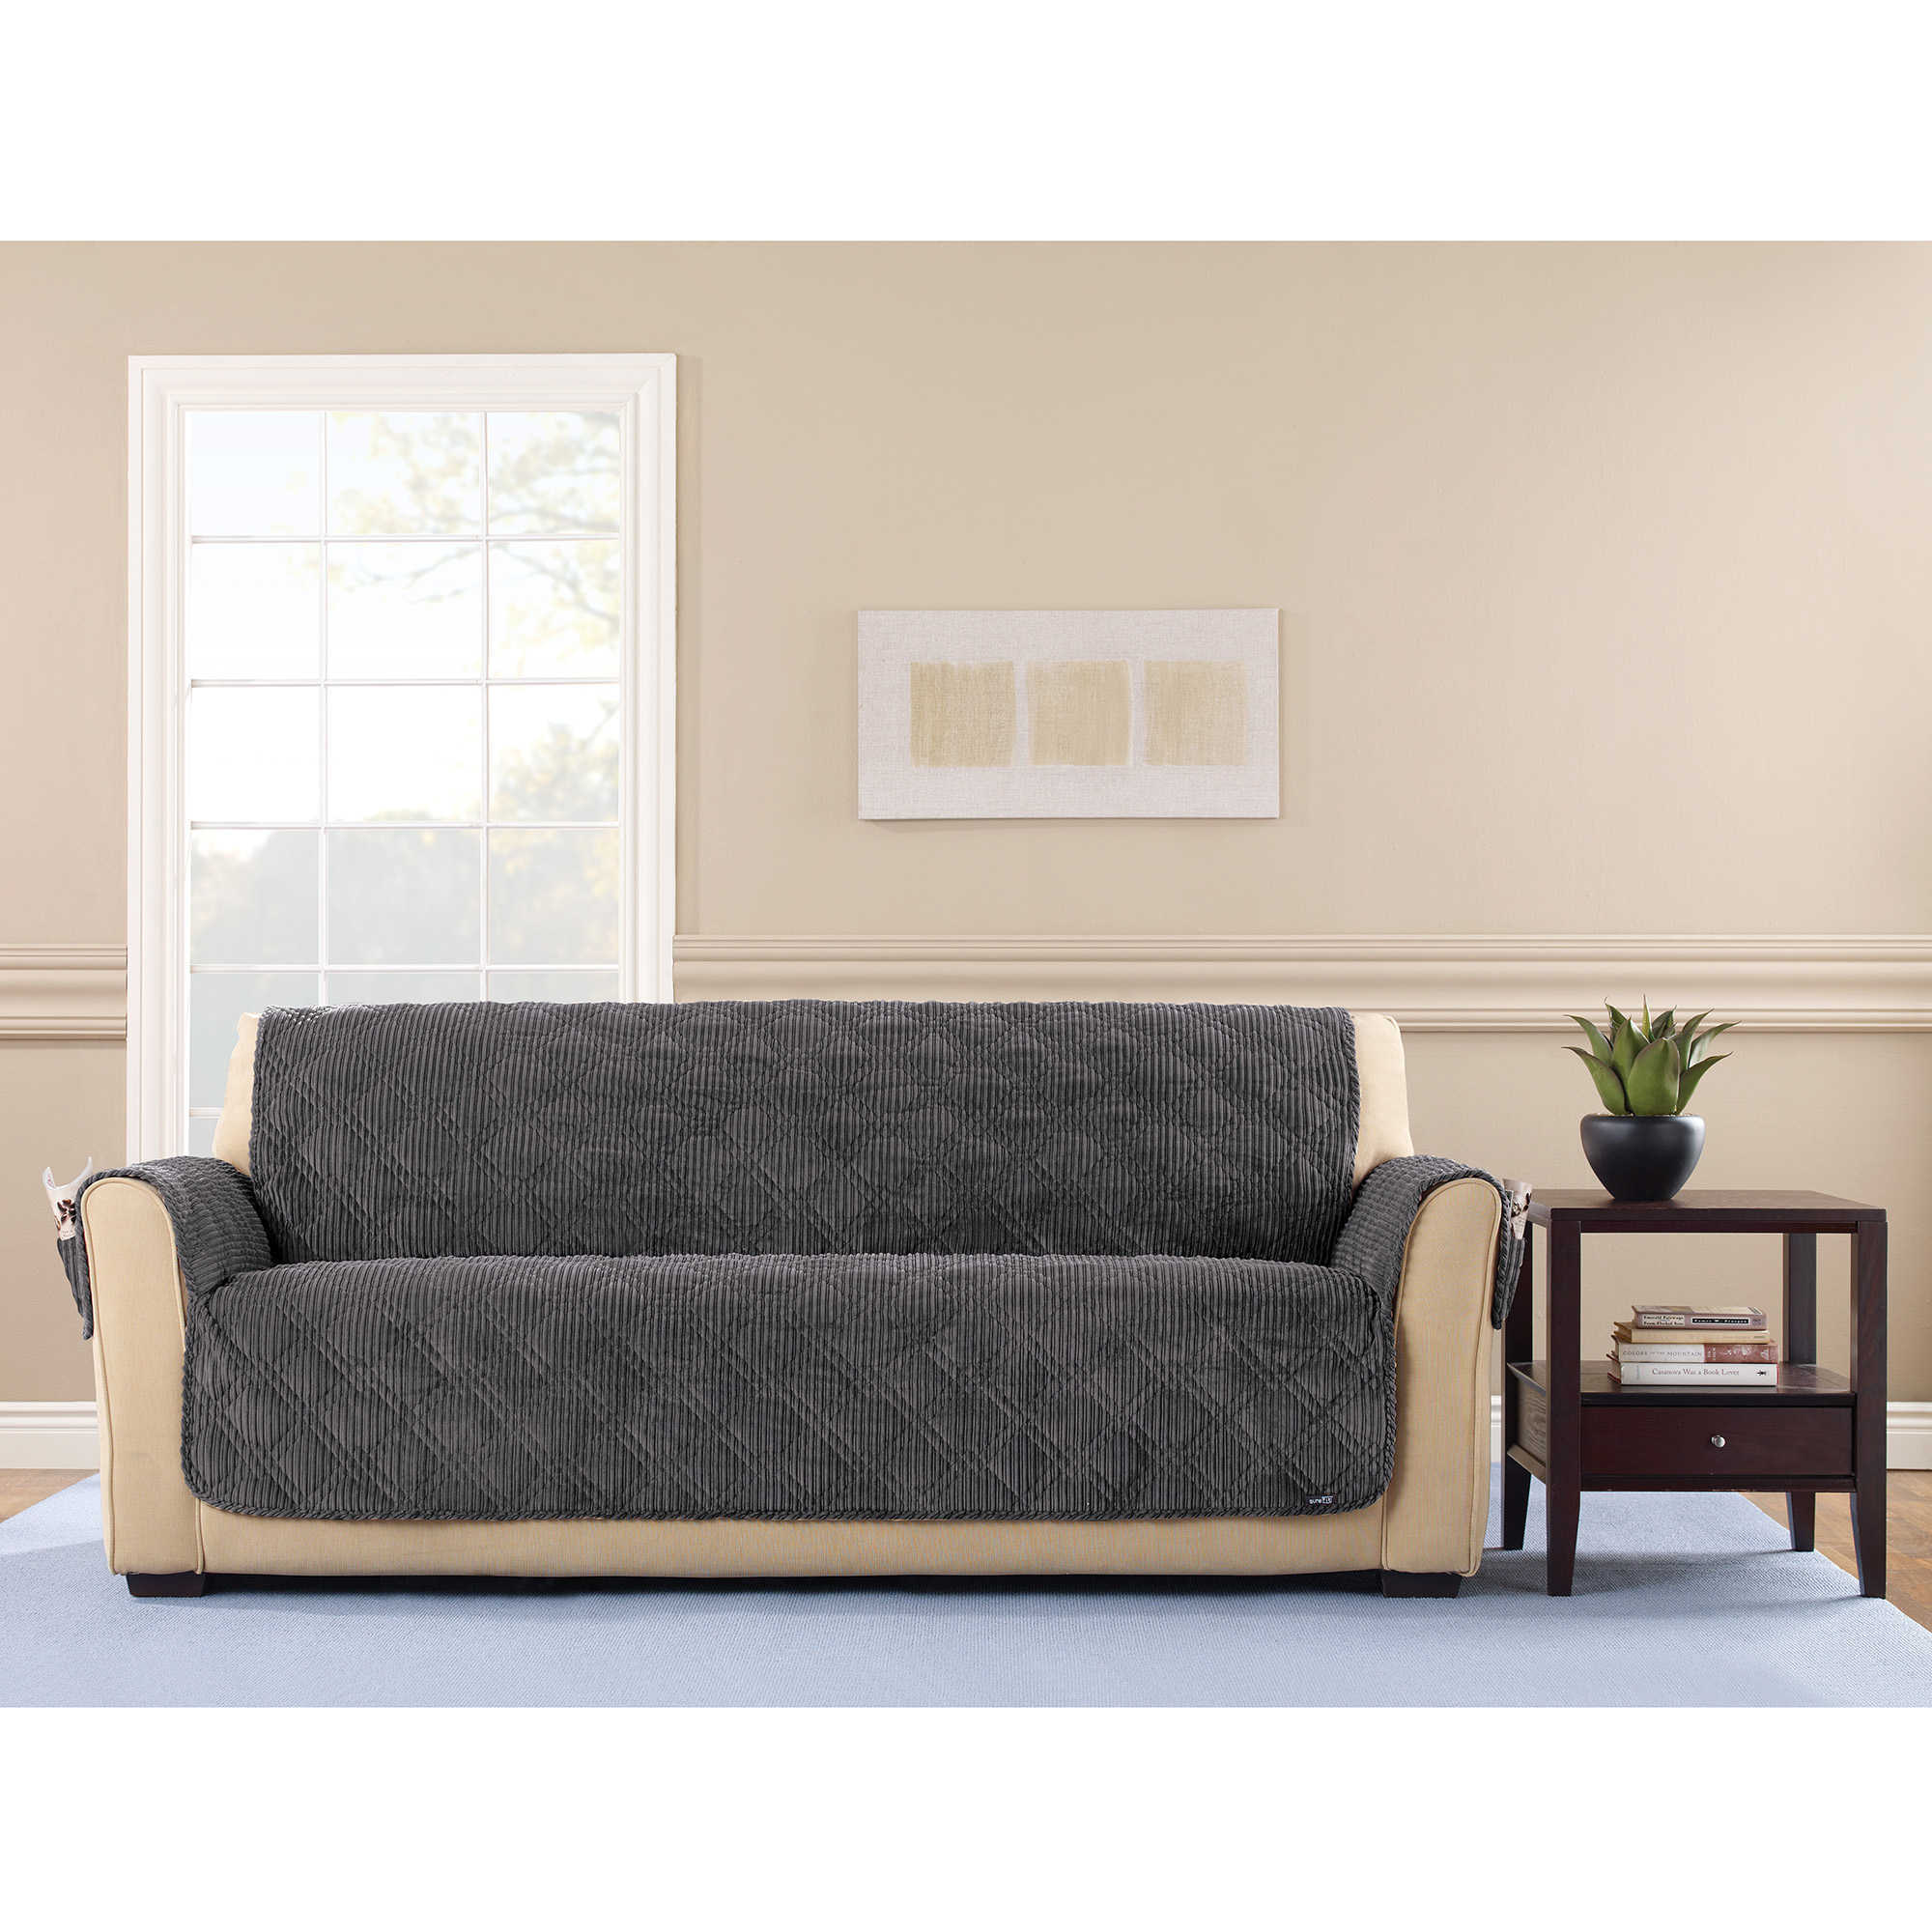 Sure Fit Wide Wale Corduroy Sofa Throw Furniture Protector   Free Shipping  Today   Overstock   23908981